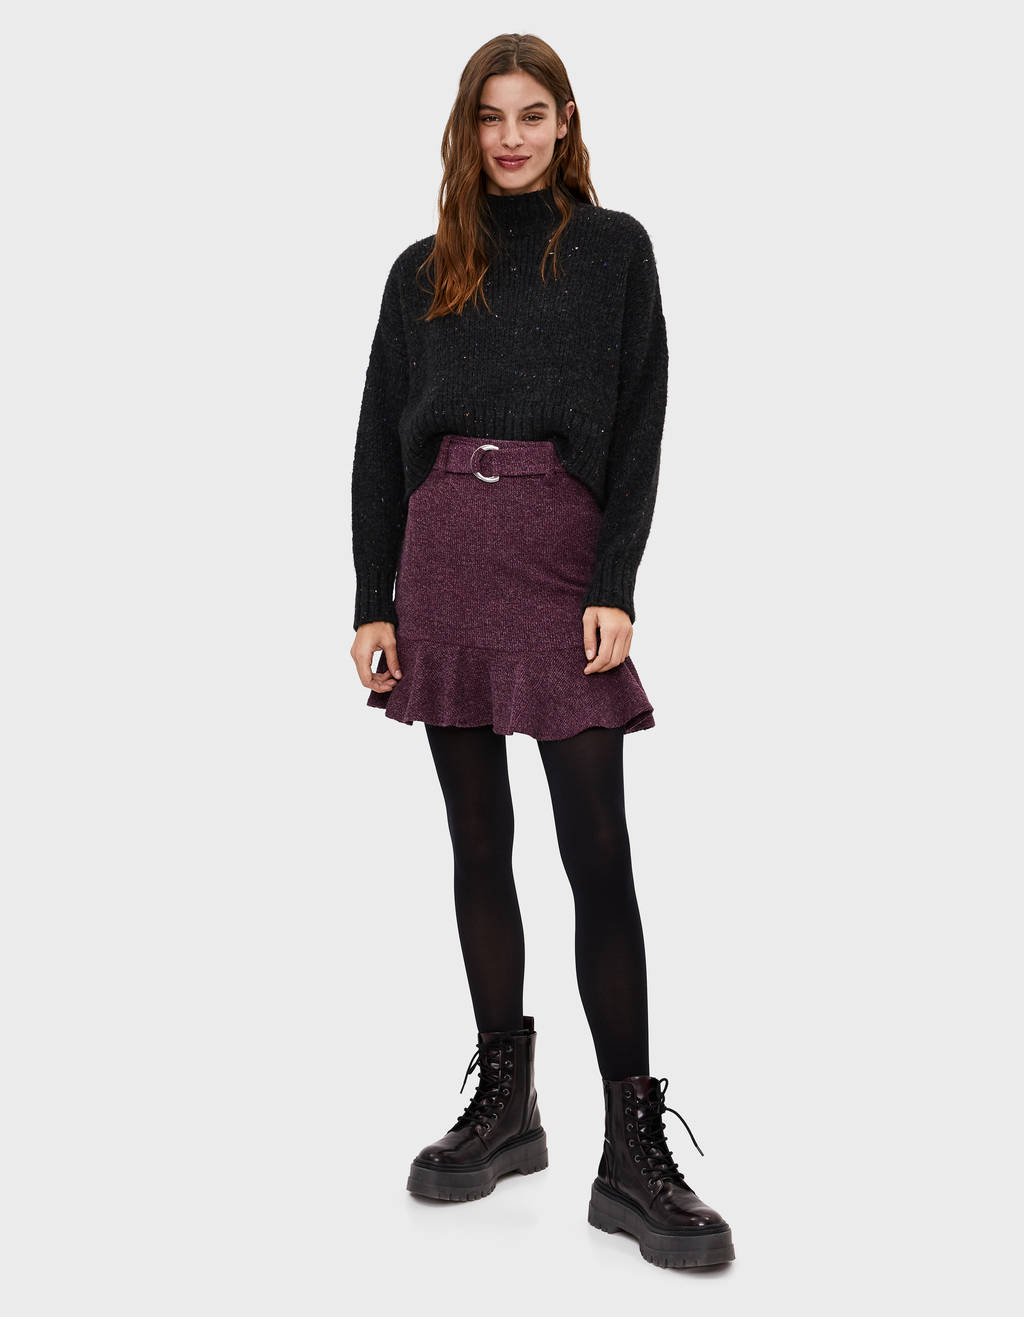 Ruffled skirt with buckle